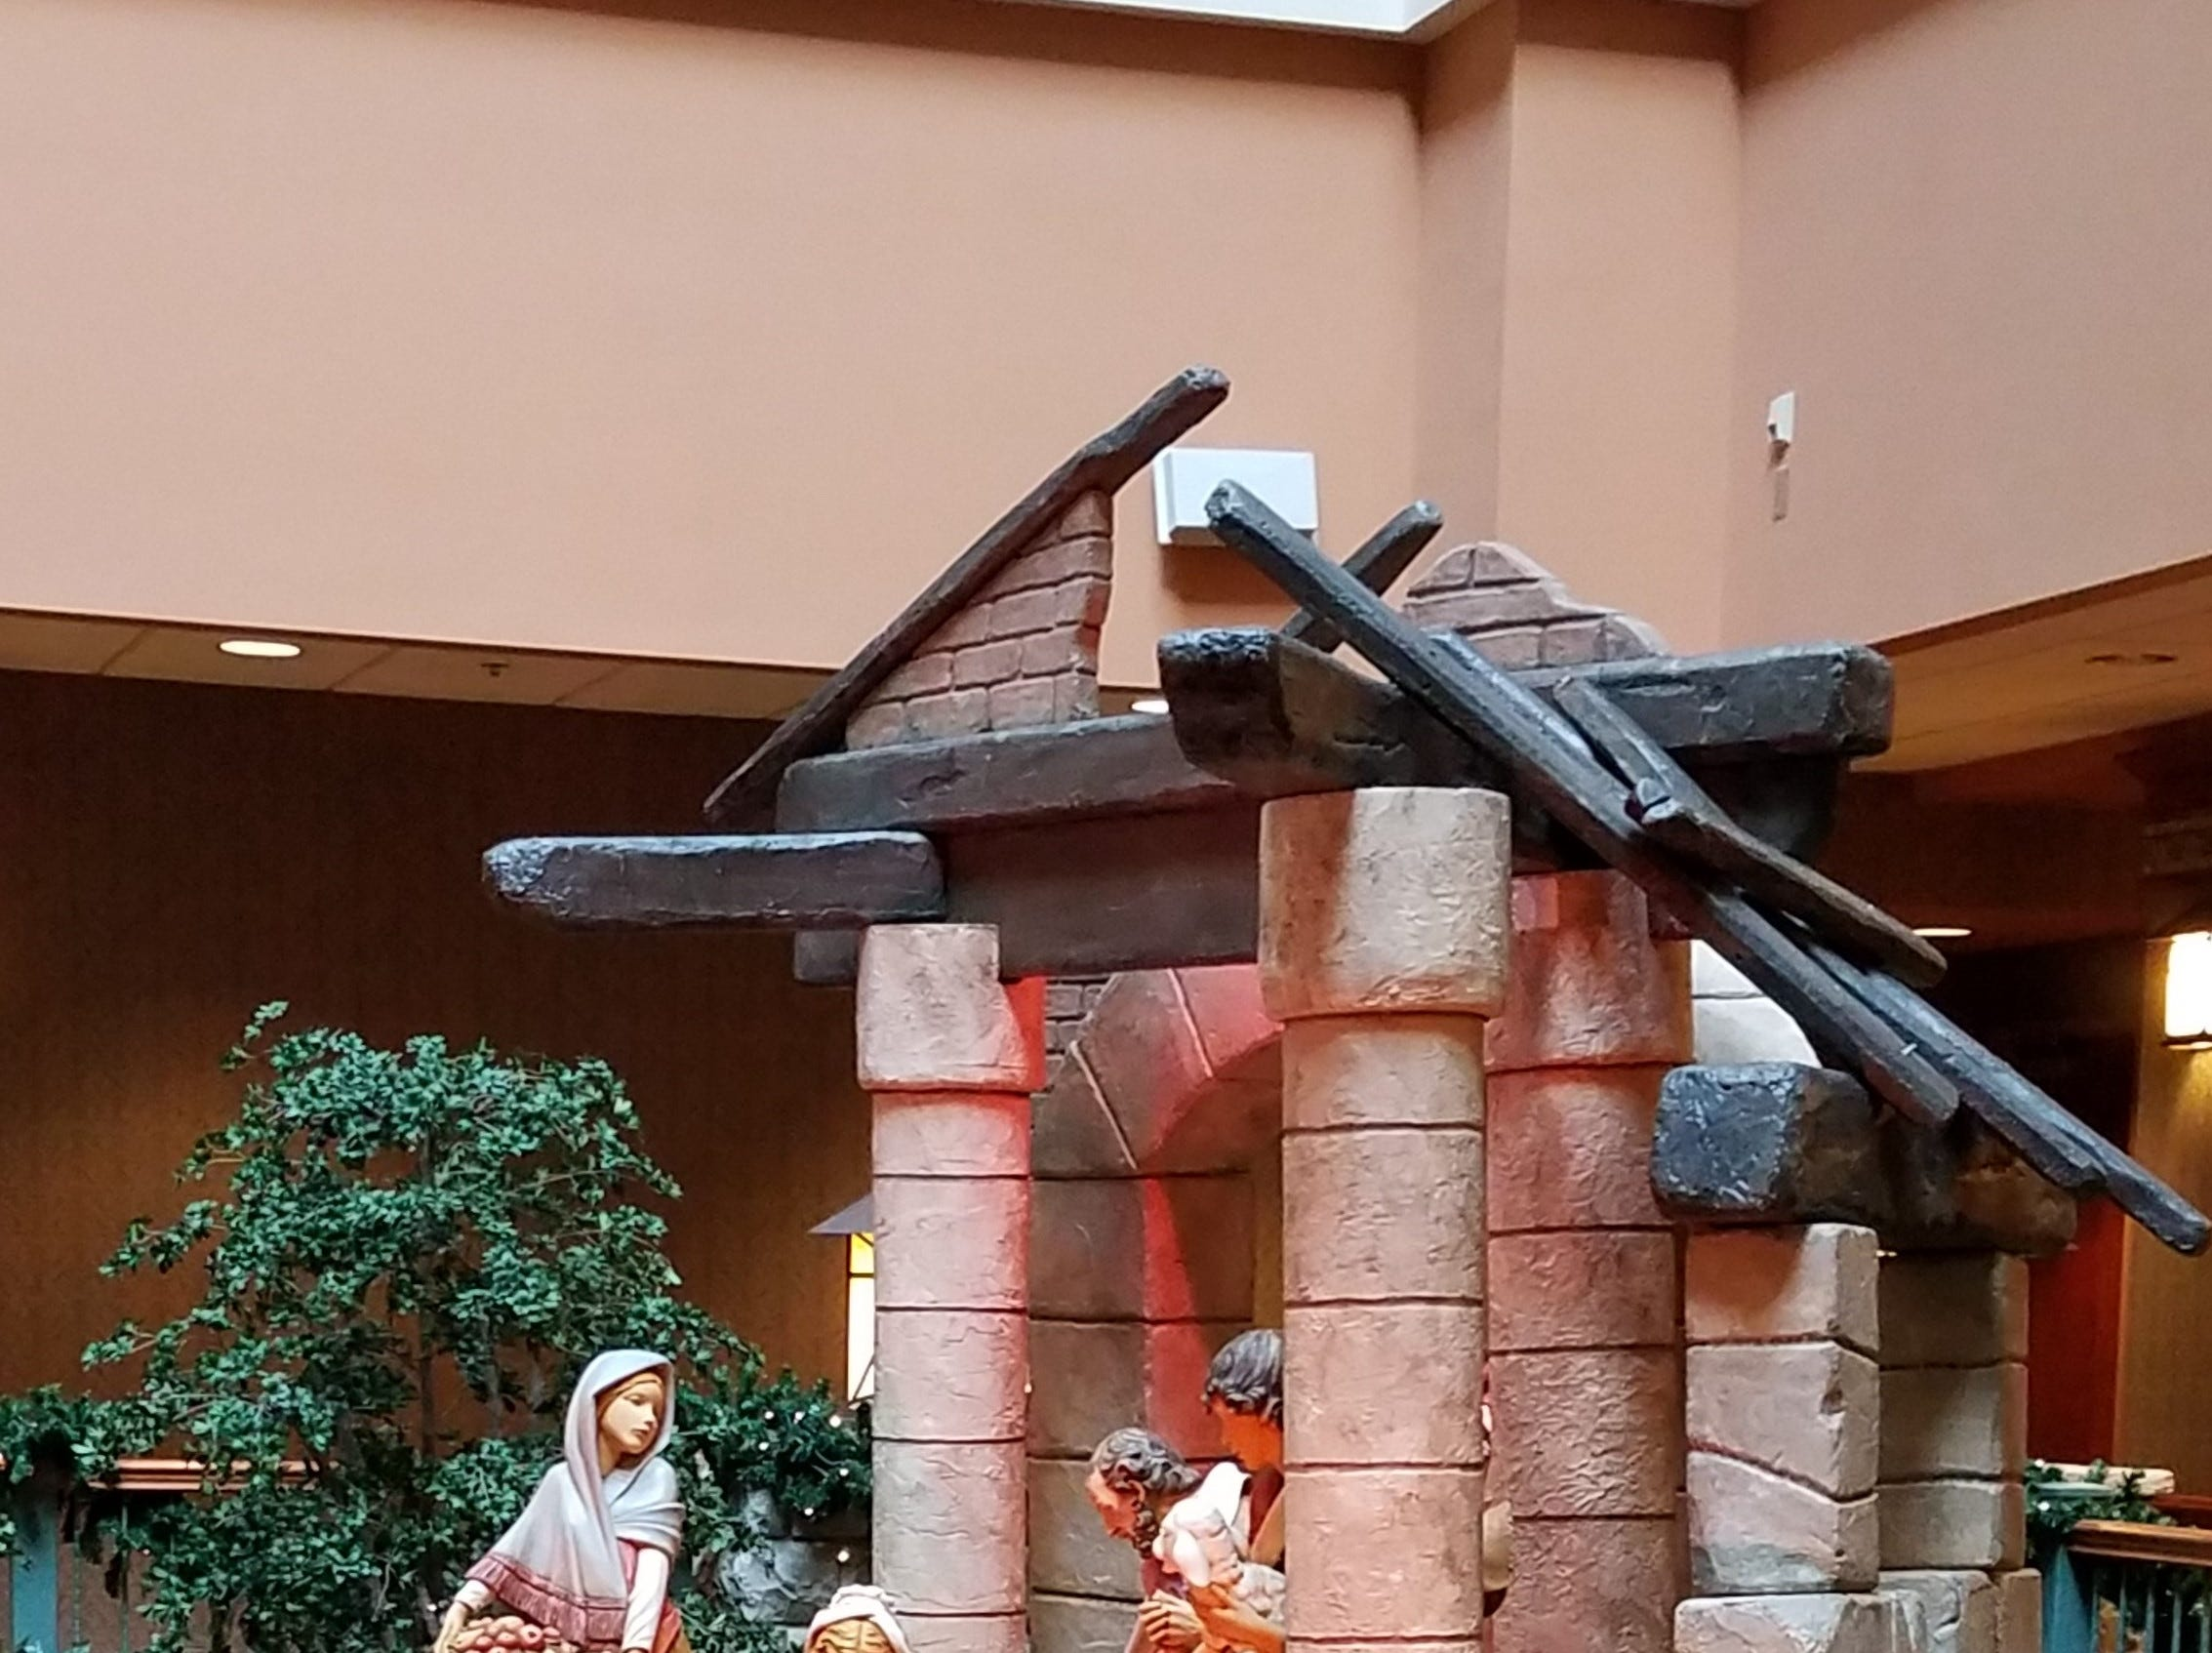 The Nativity scene created and signed by the House of Fontanini in Italy is another famous part of the display.